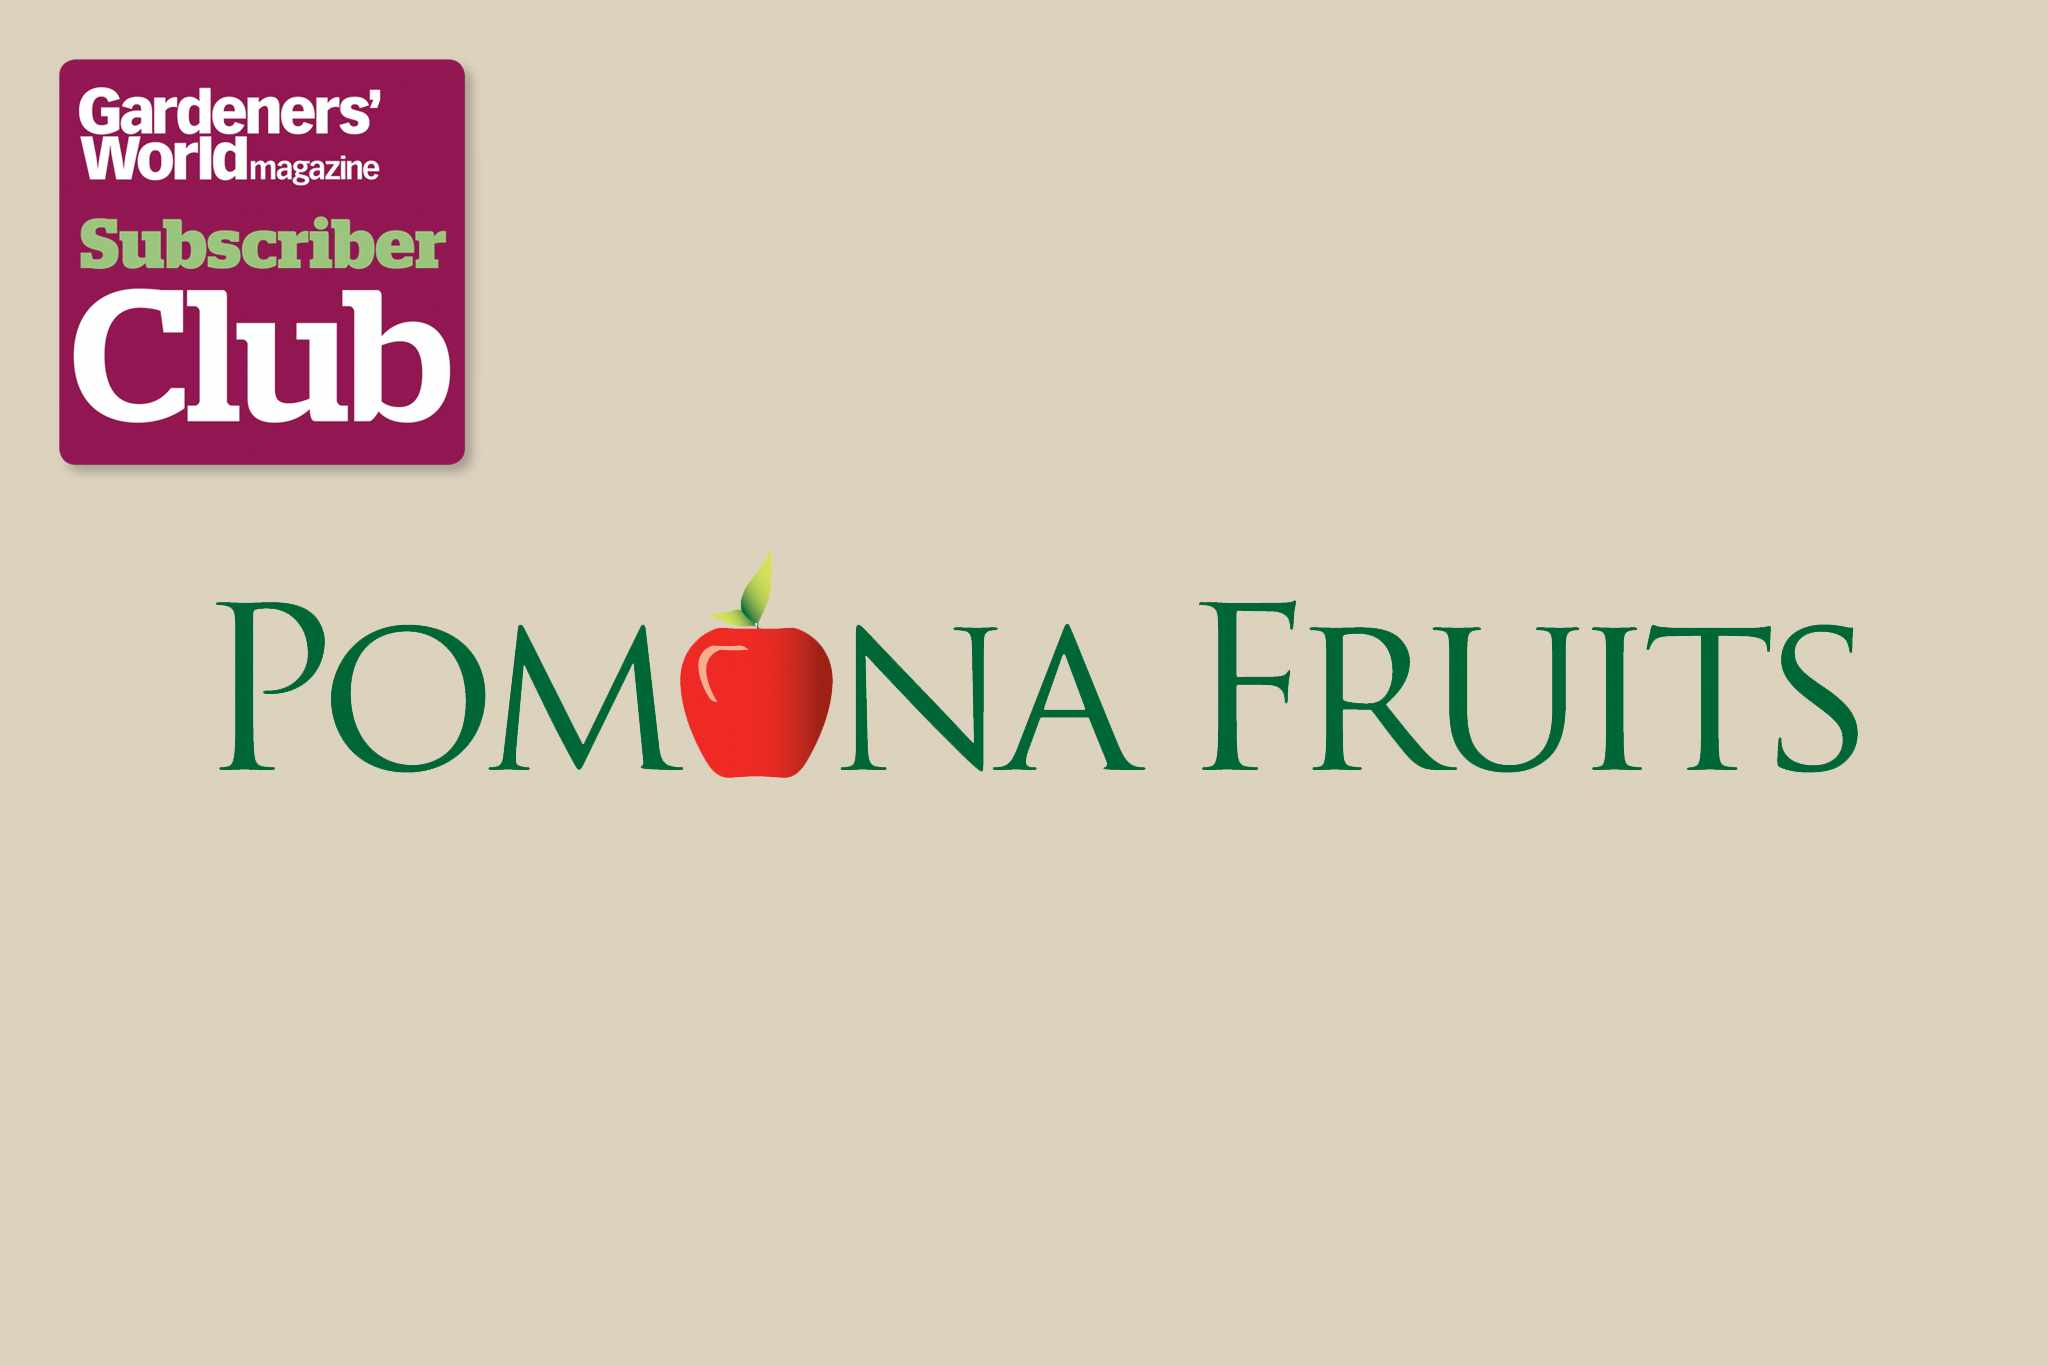 Pomona Fruits BBC Gardeners' World Magazine Subscriber Club discount